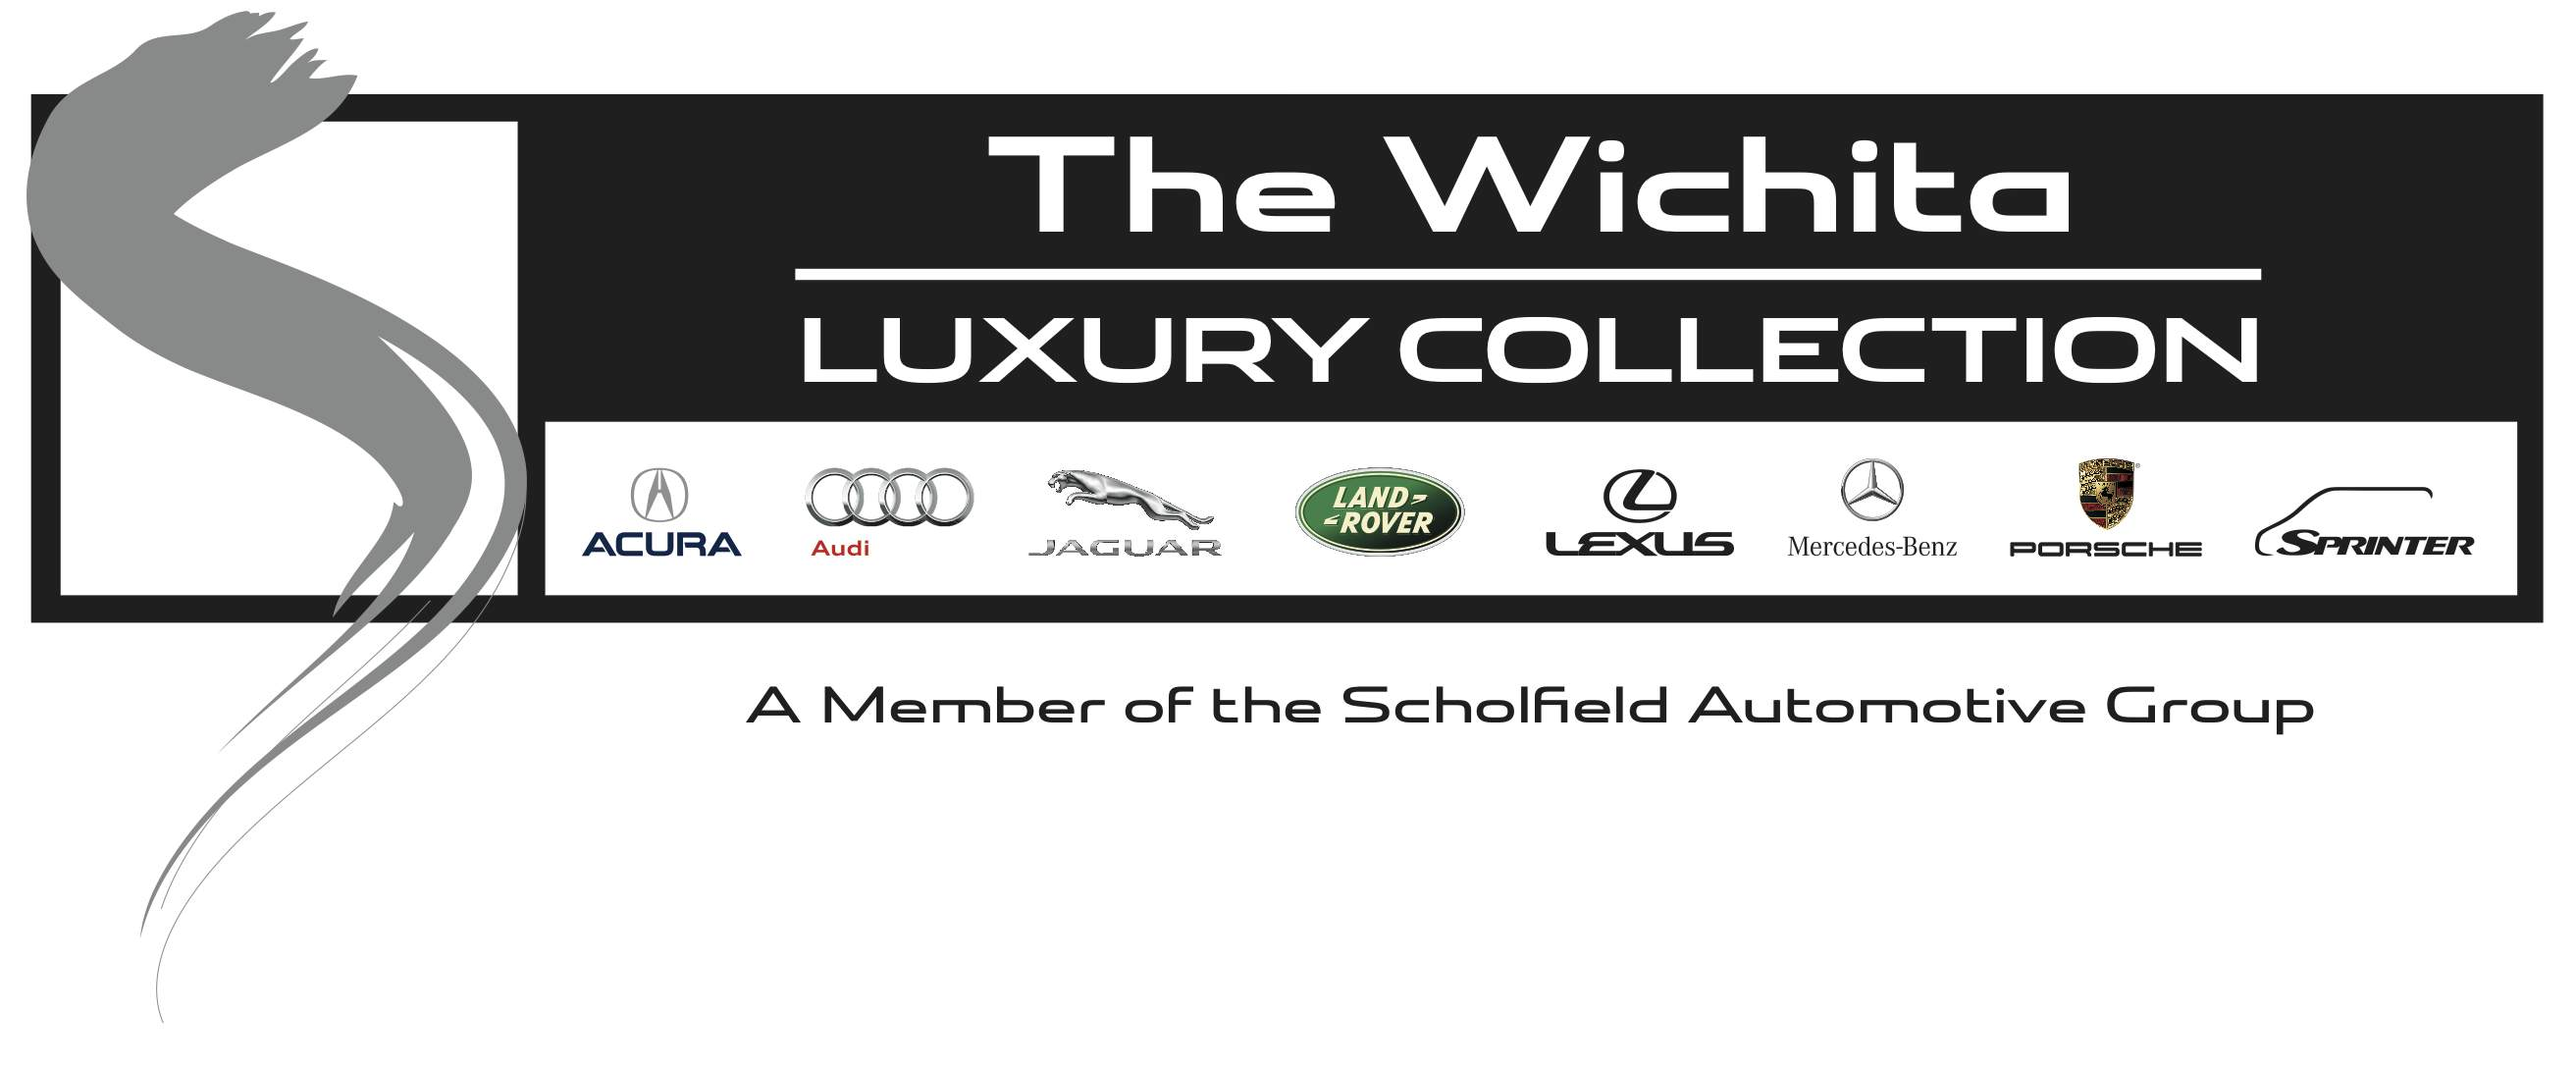 Wichita Luxury Collection